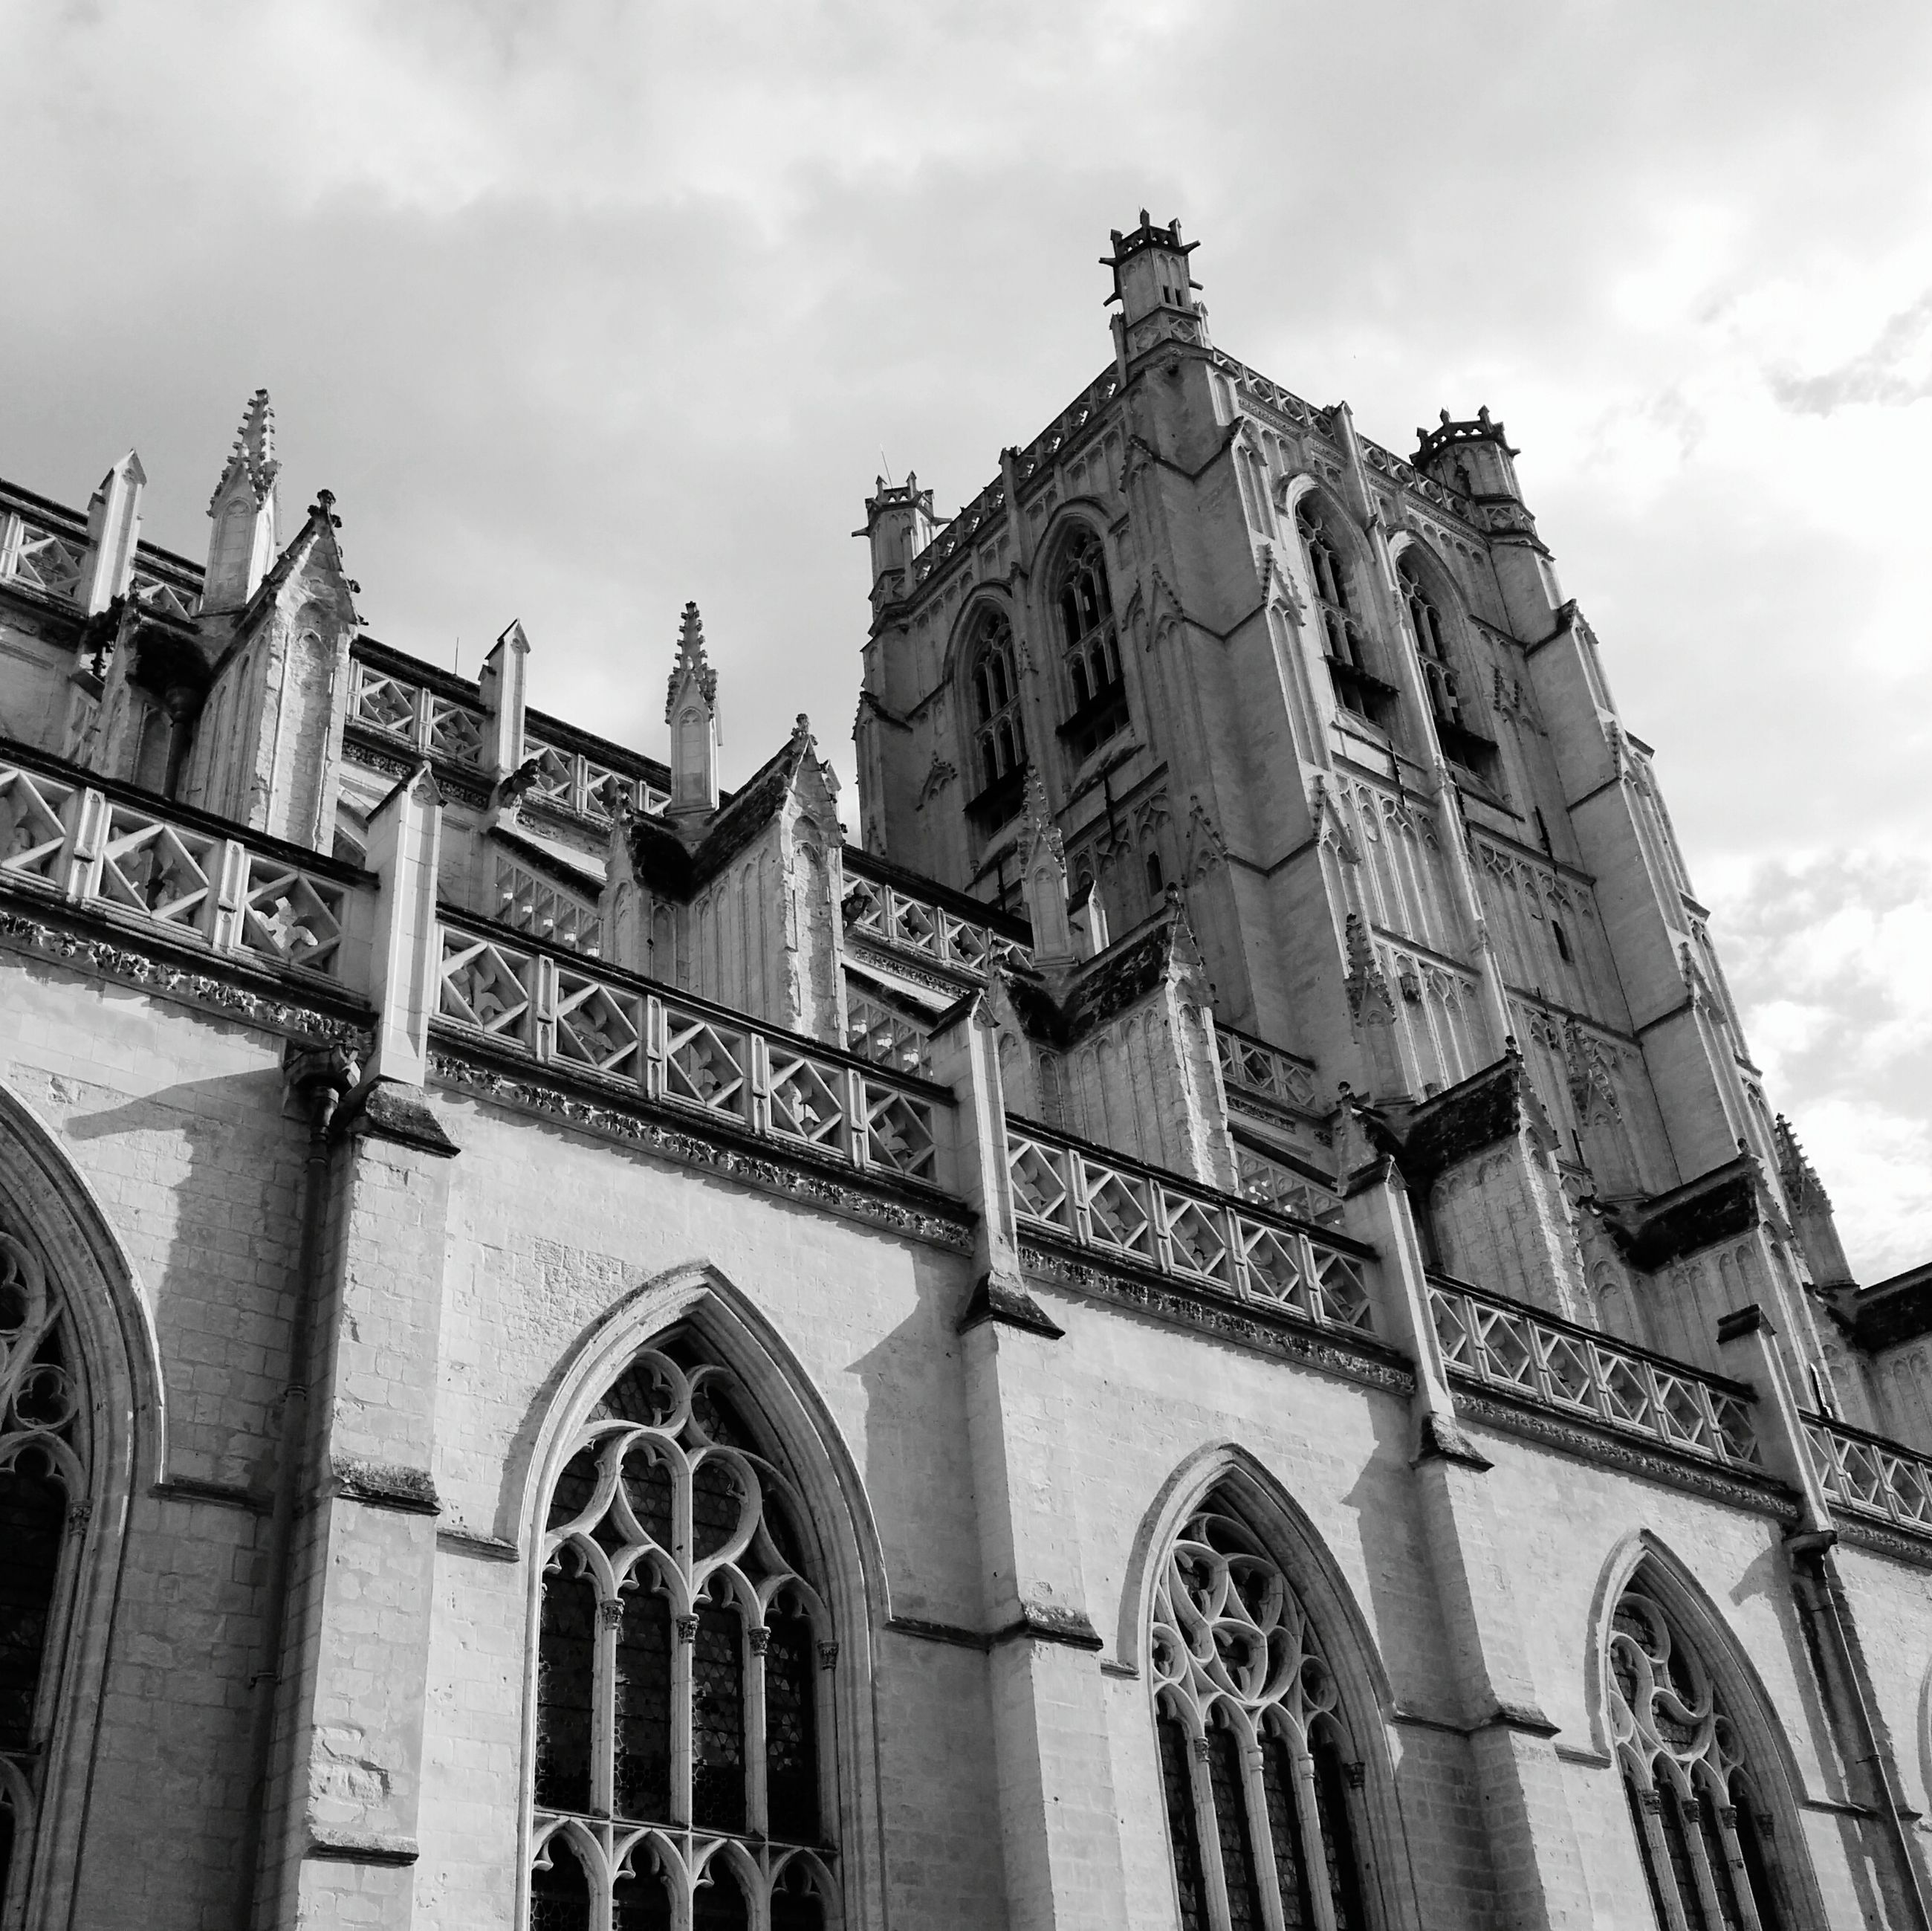 architecture, built structure, building exterior, low angle view, arch, sky, religion, cloud - sky, church, history, facade, place of worship, window, cloud, city, day, cloudy, old